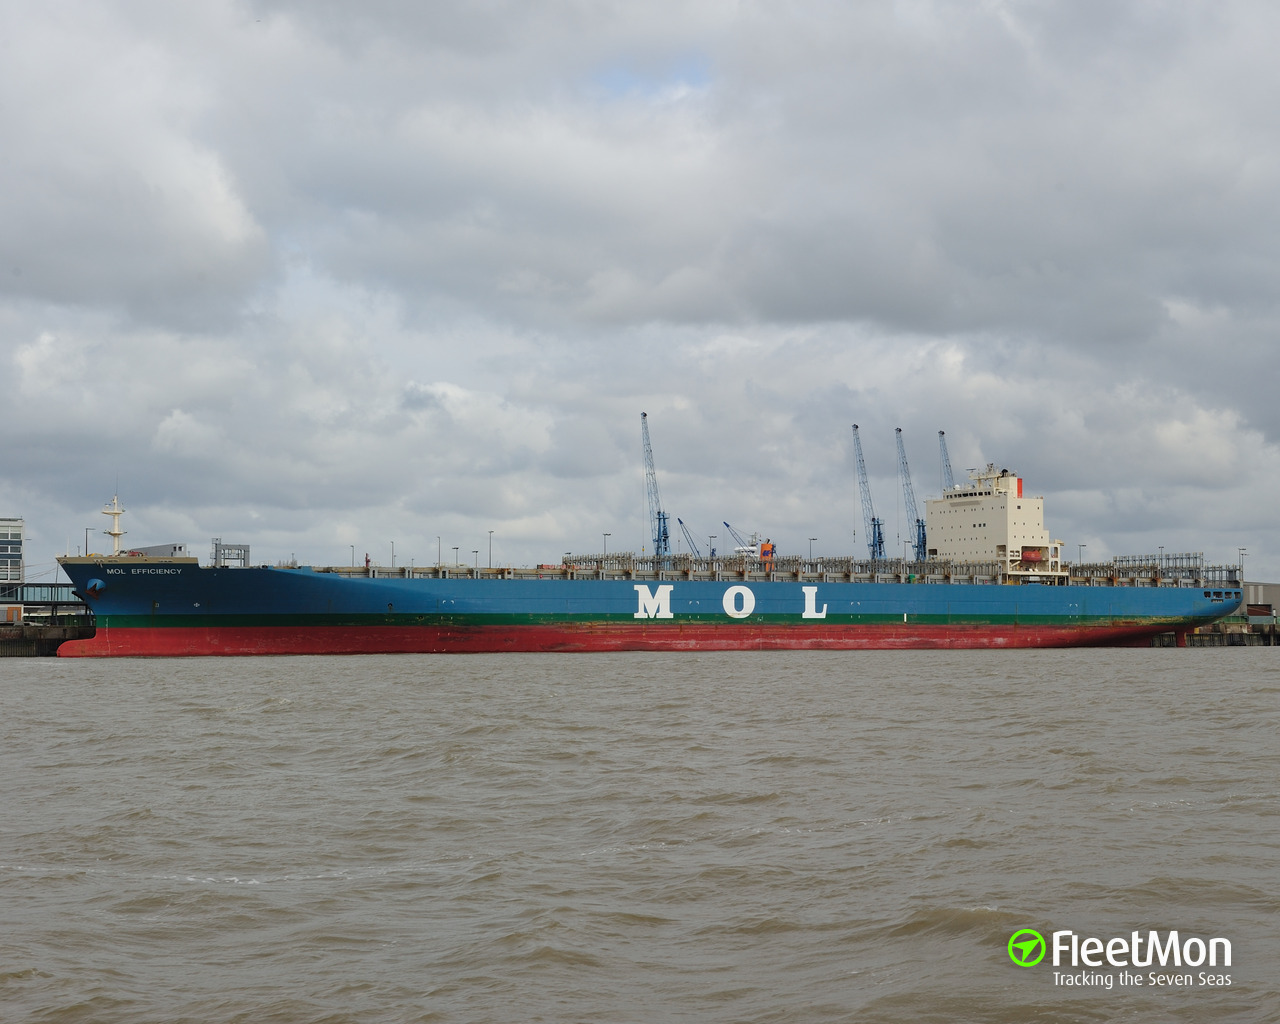 Vessel MOL EFFICIENCY